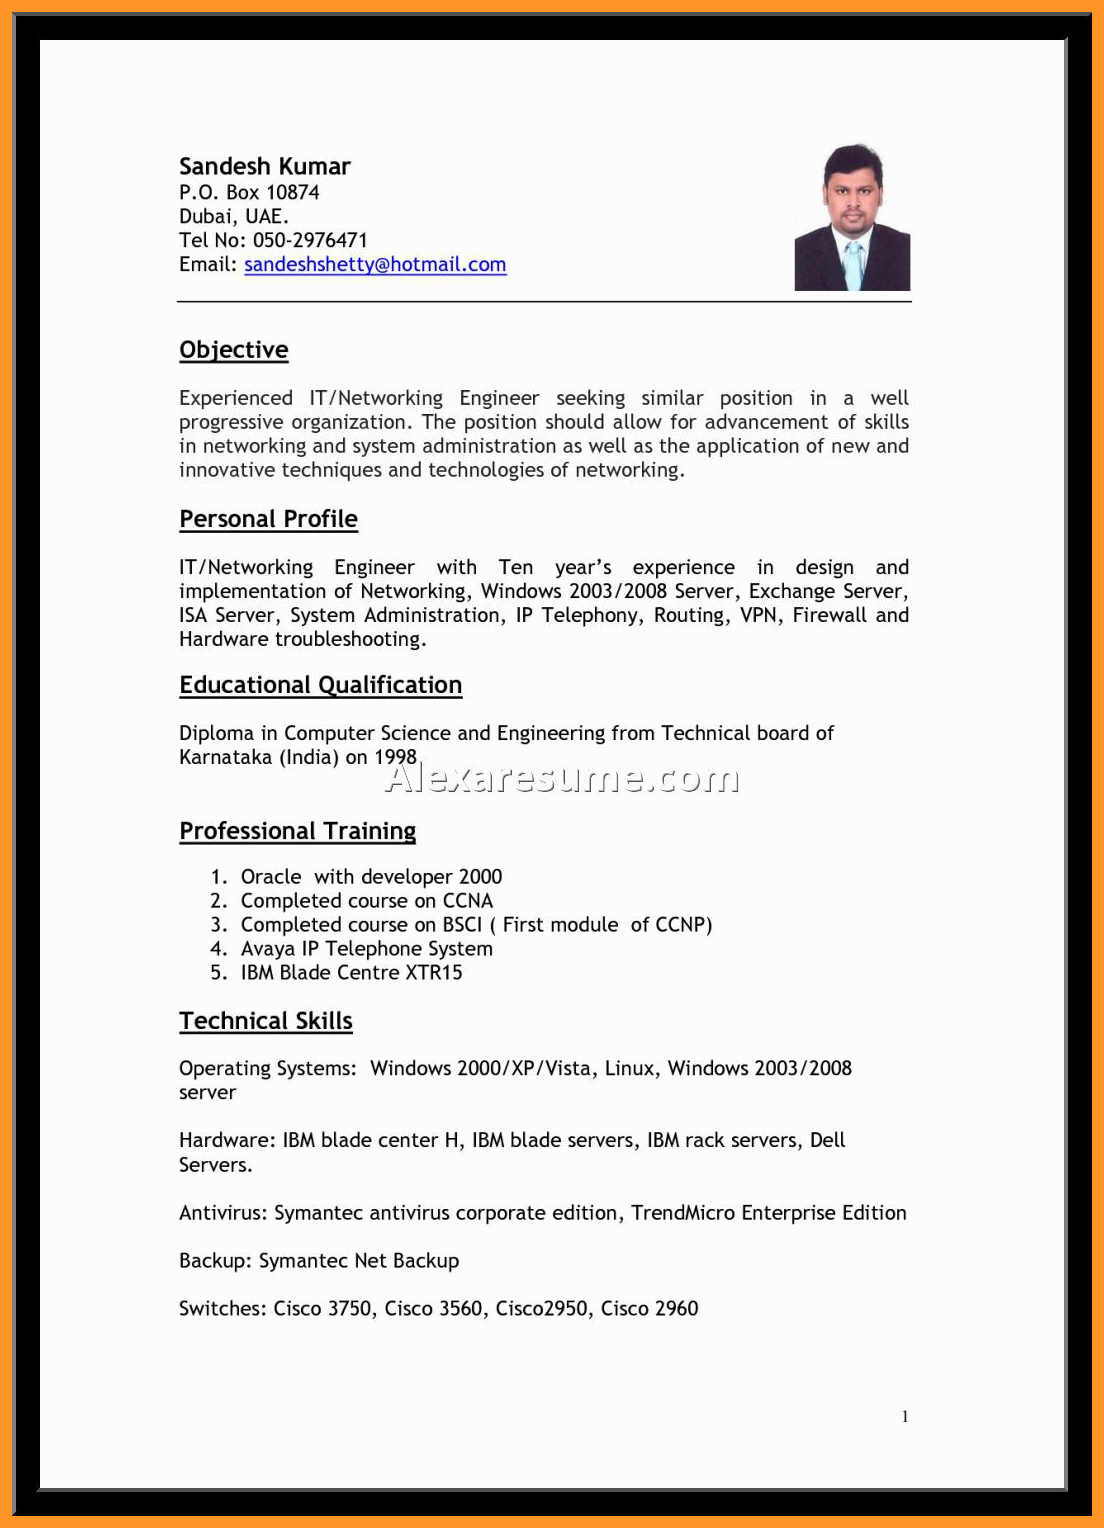 ideal resume length best examples format font size recommended standard jobsxs academic Resume Resume Format Font Size